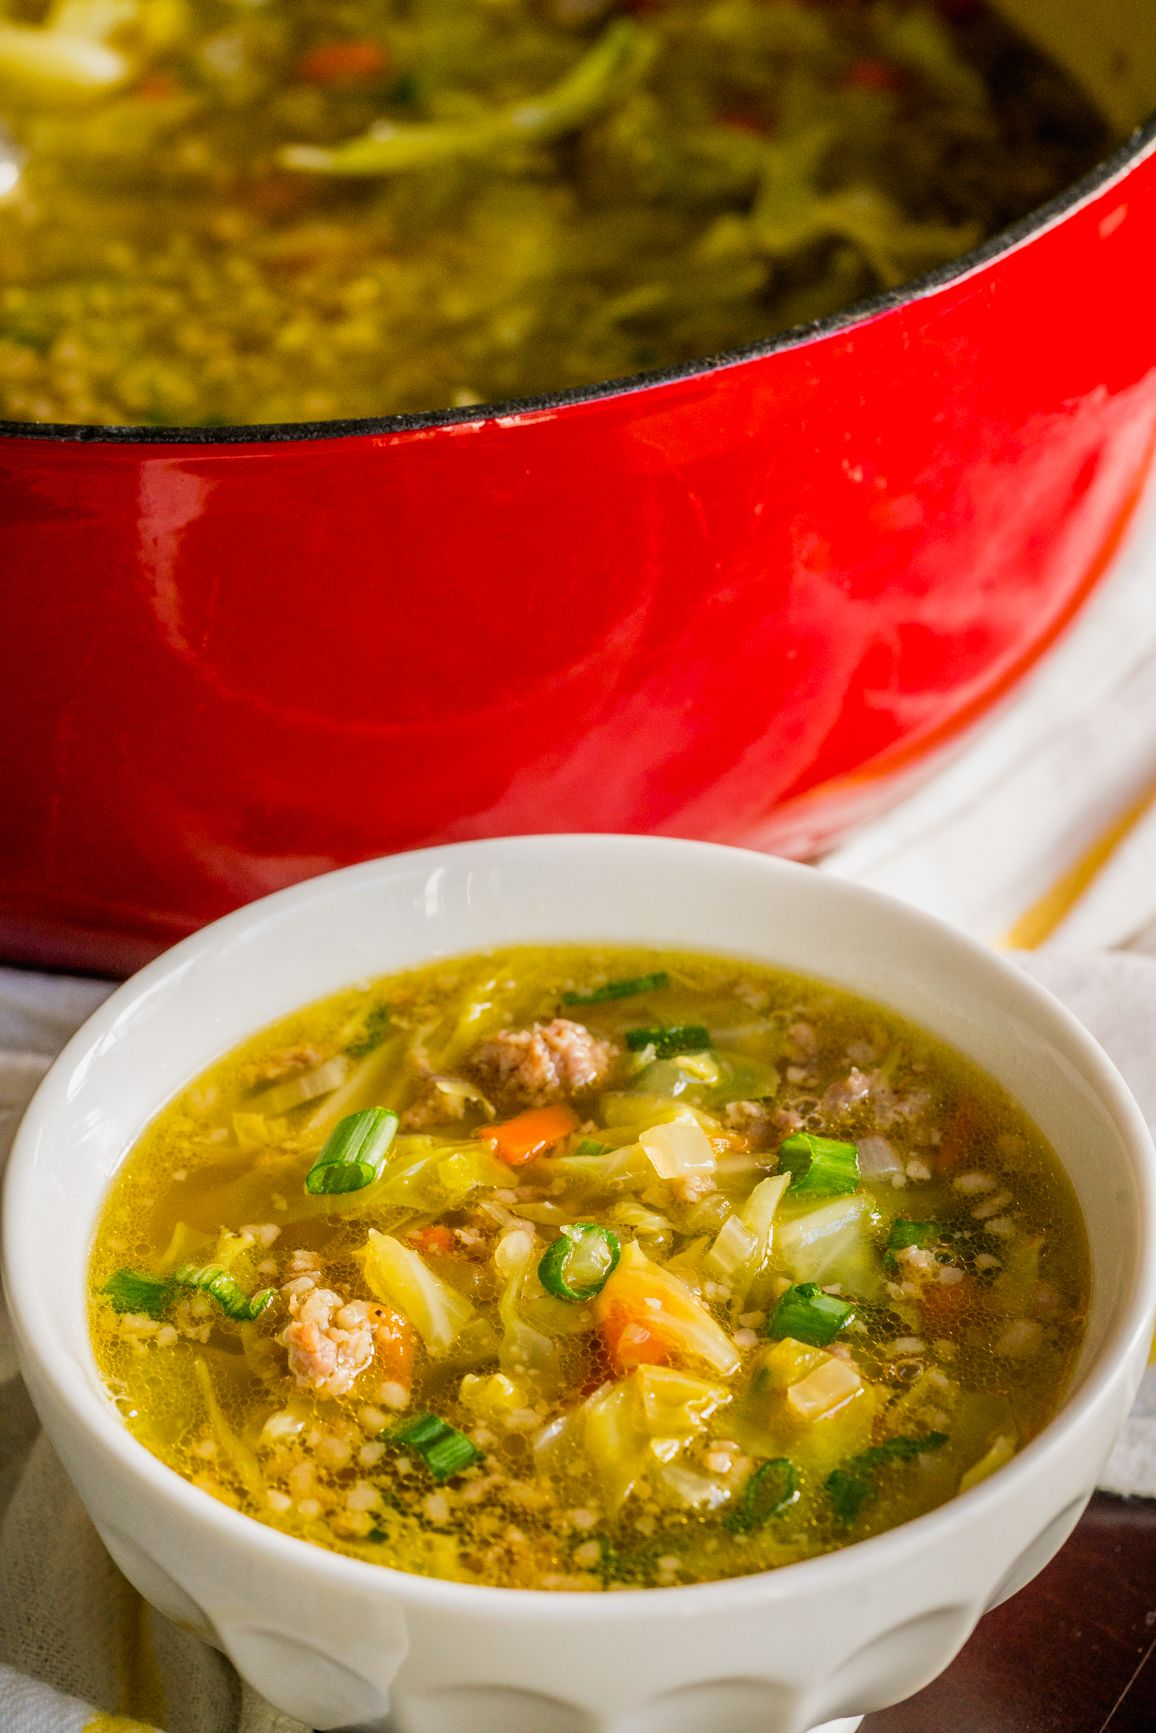 Egg roll soup recipe cooking dinner lean and green